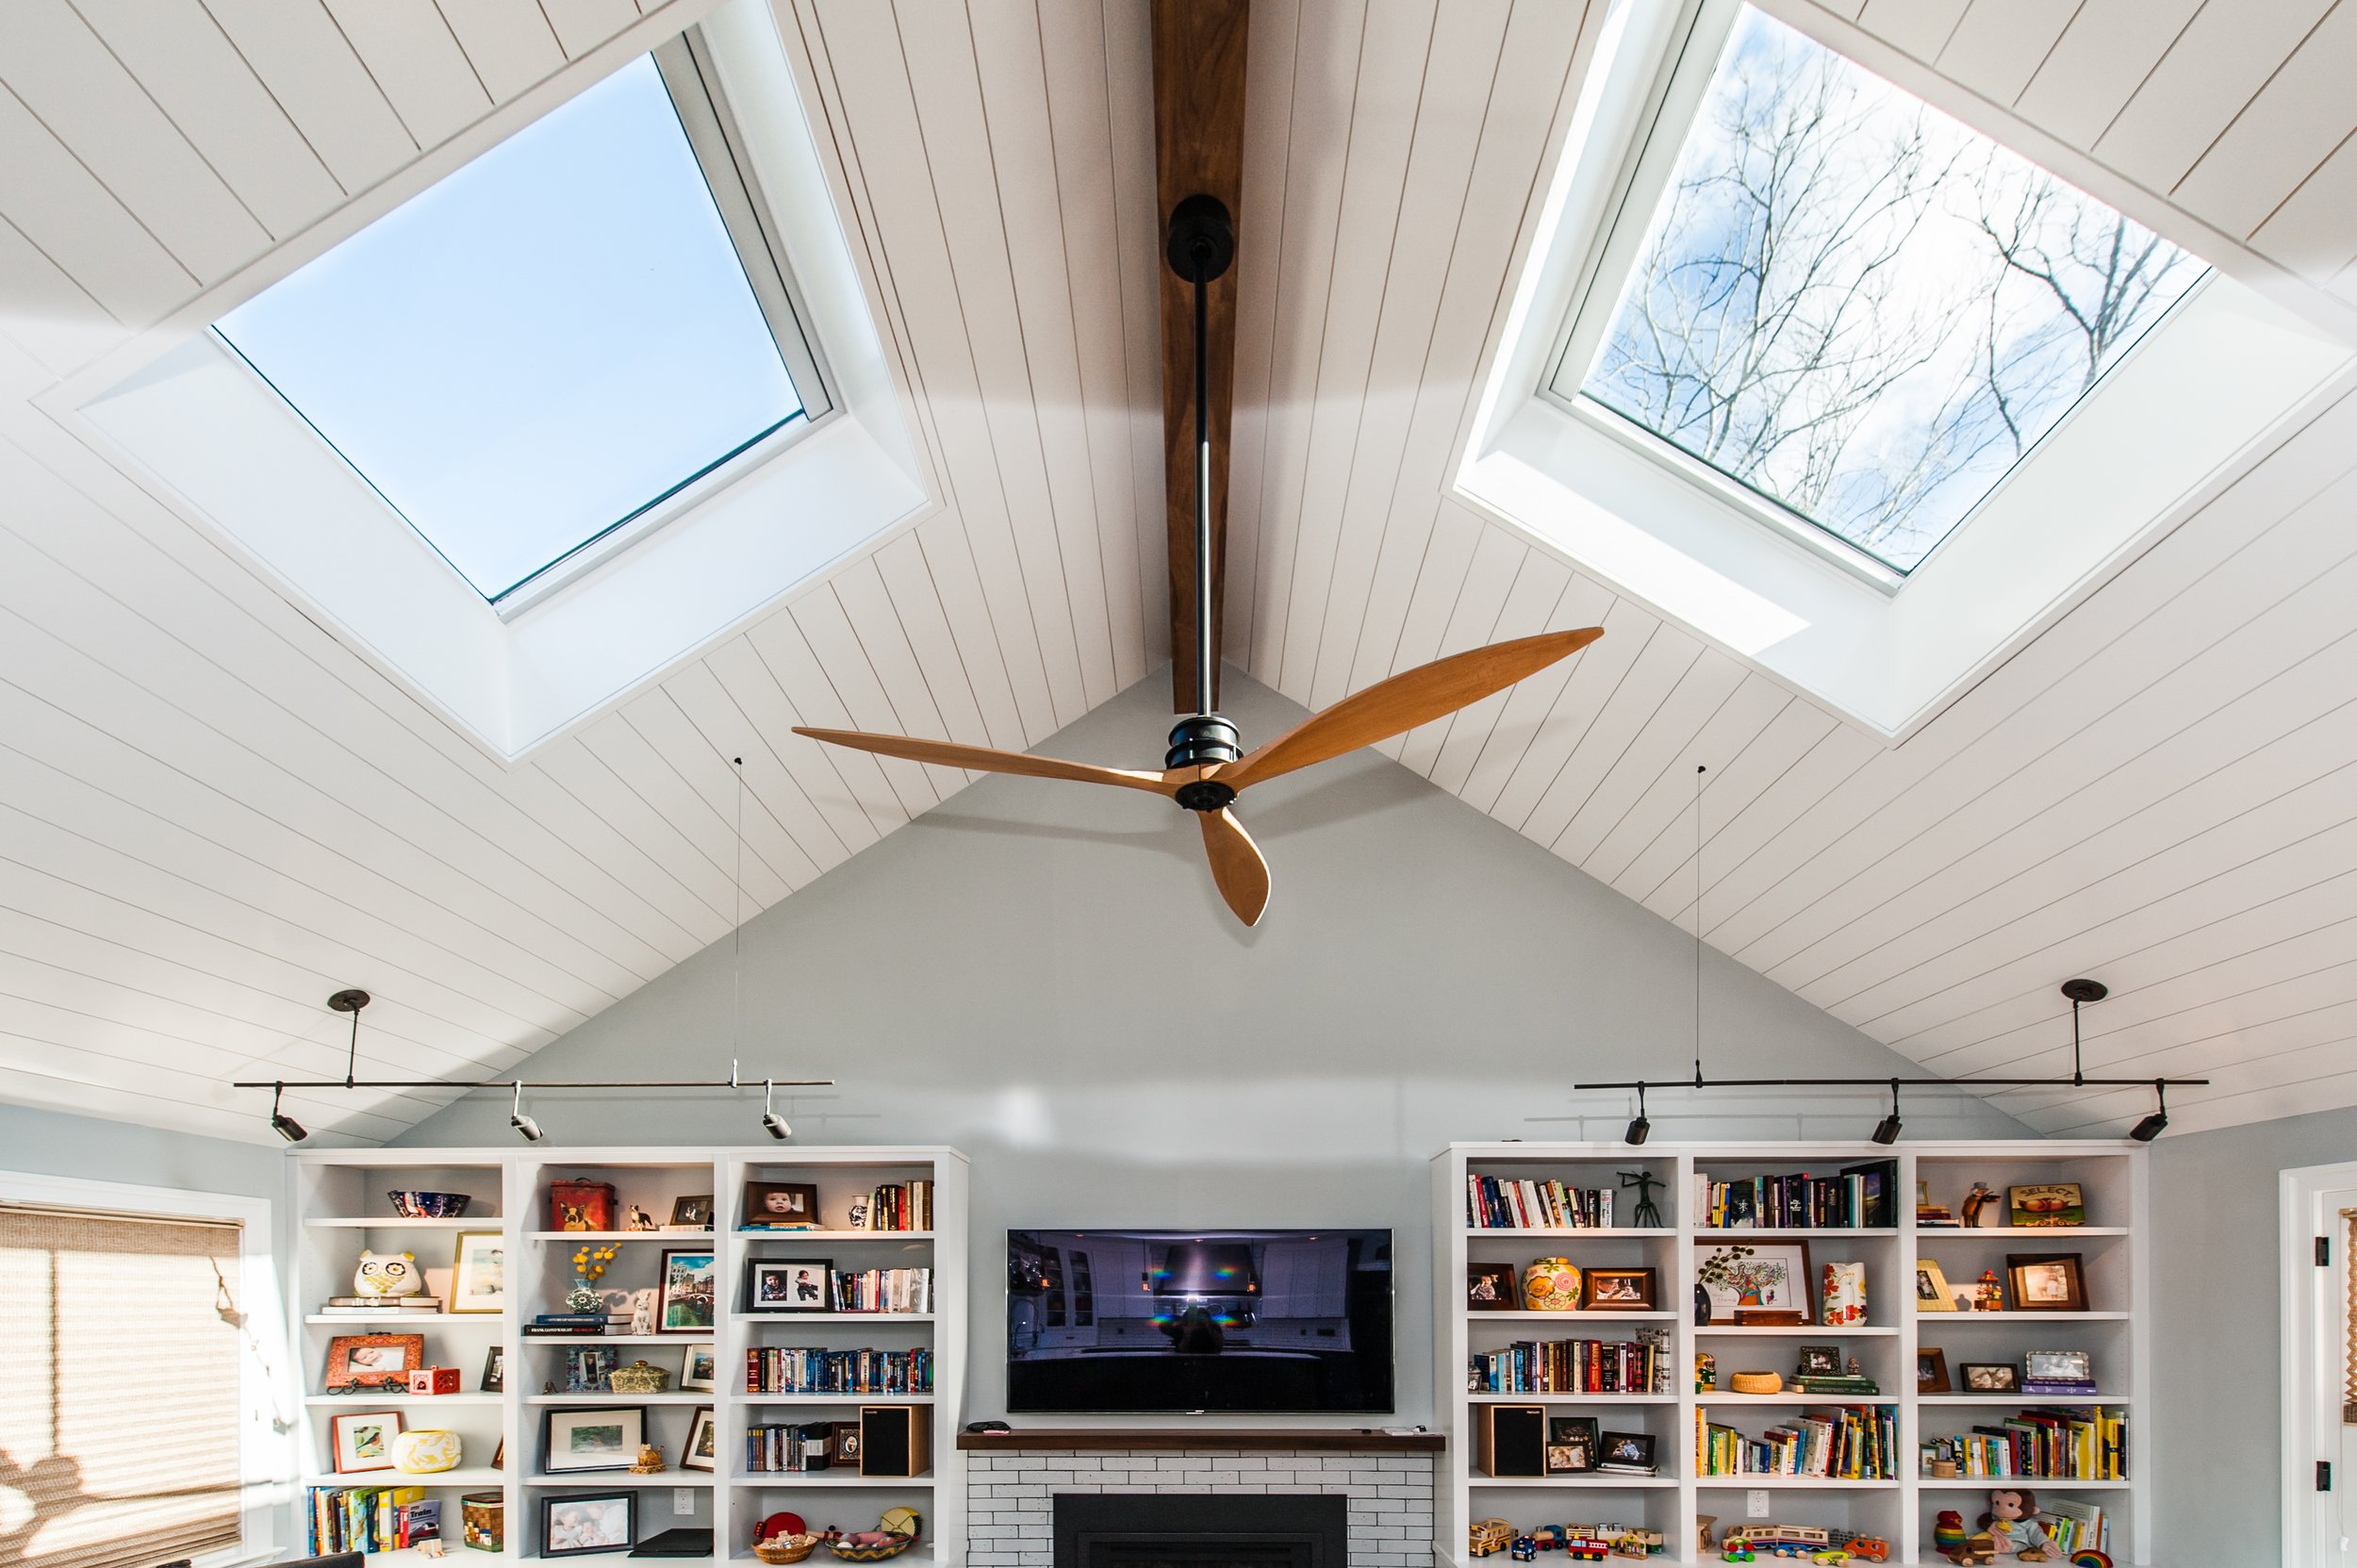 Family Room Renovation with new cathedral slatted ceilings